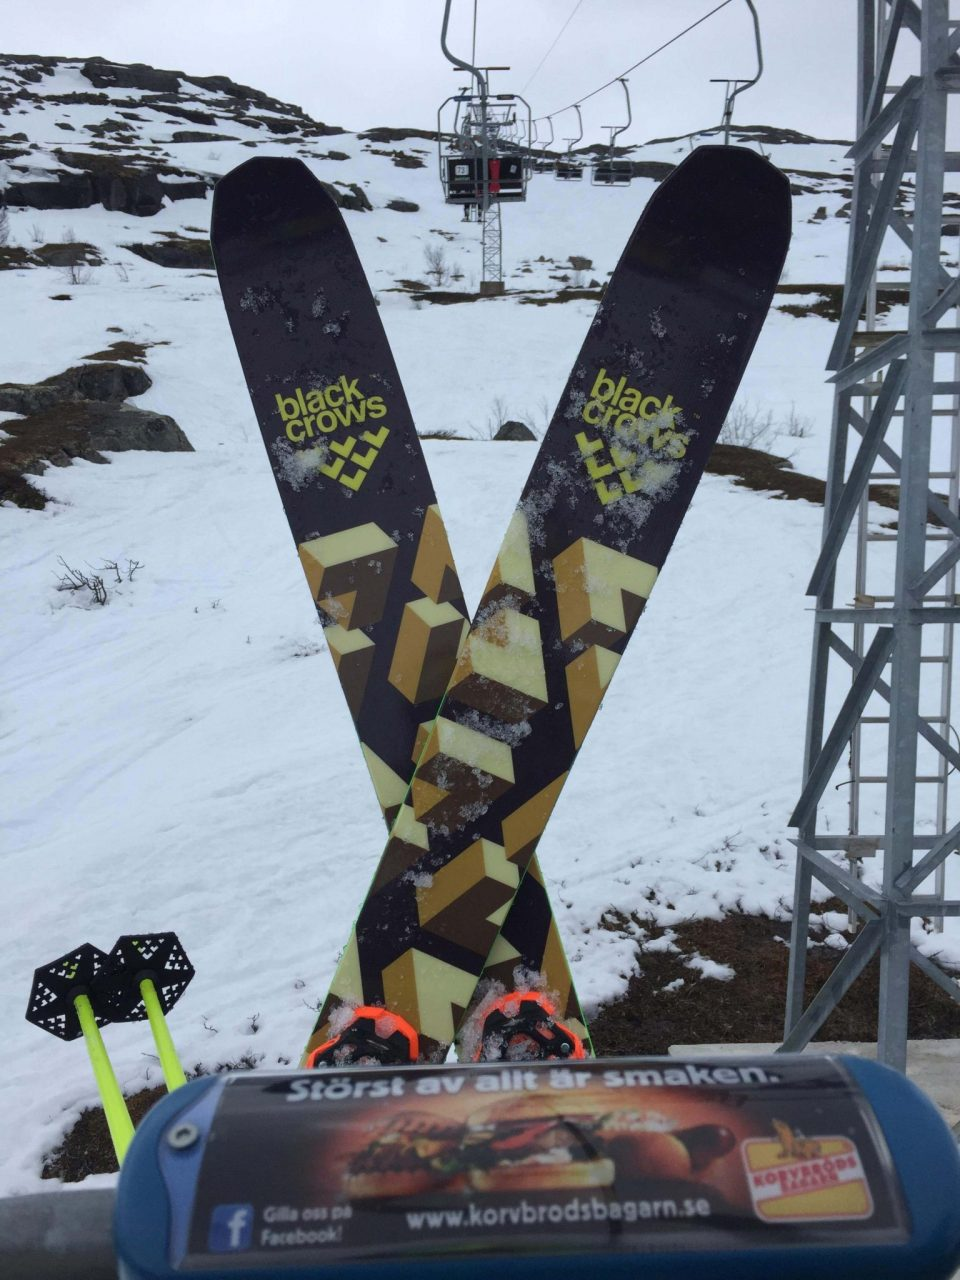 Scandinavian Big Mountain Championship skis : anima Photo: kristofer turdell